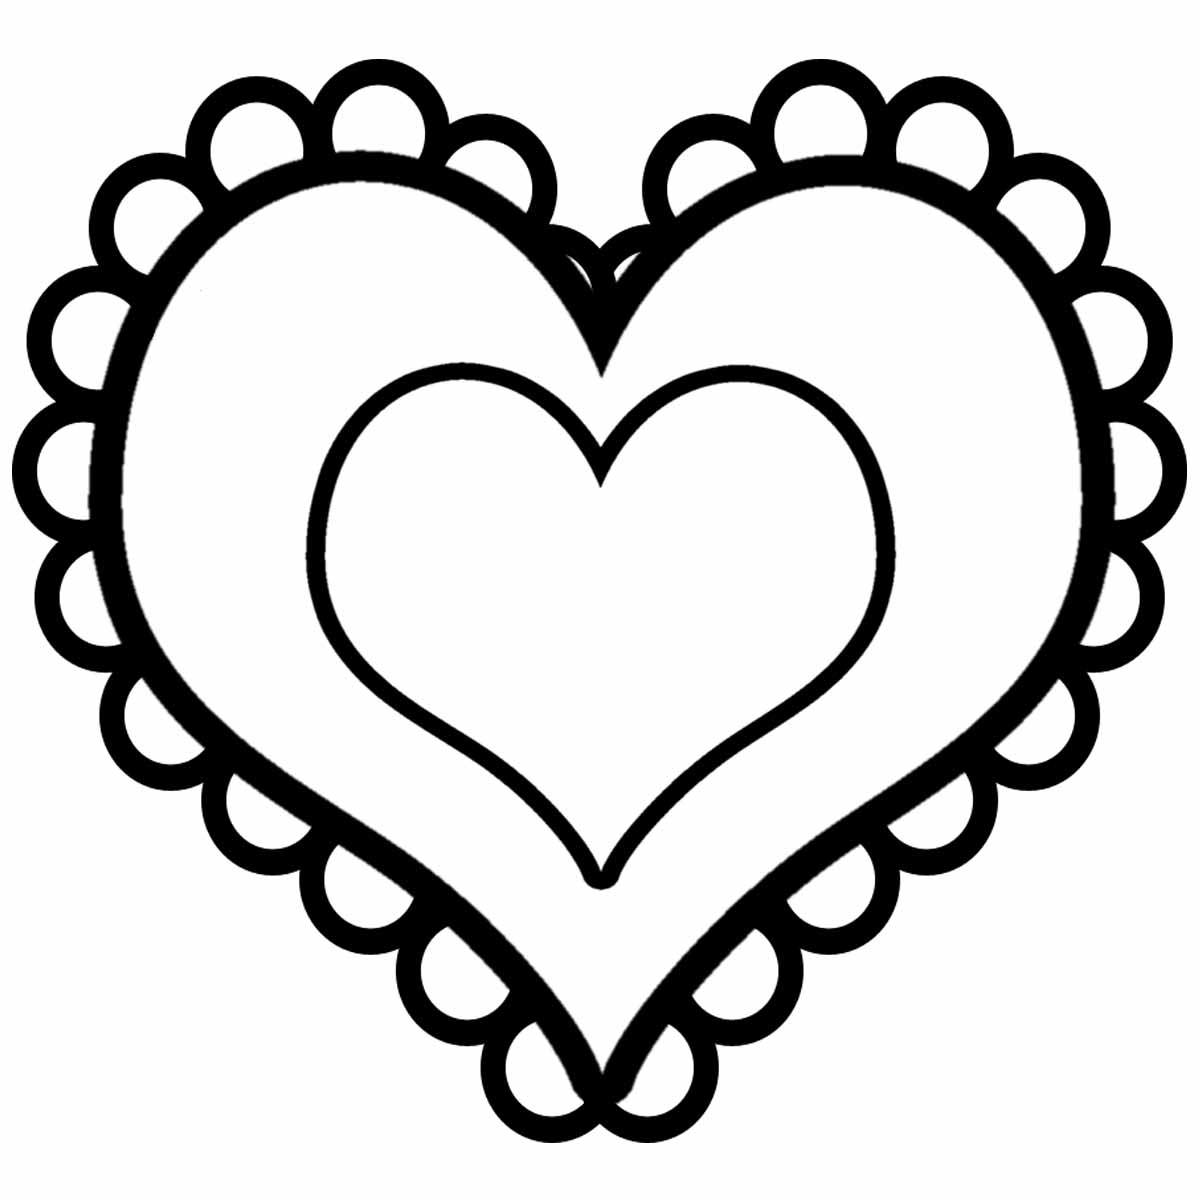 cartoon heart coloring pages free printable heart coloring pages for kids heart pages cartoon coloring